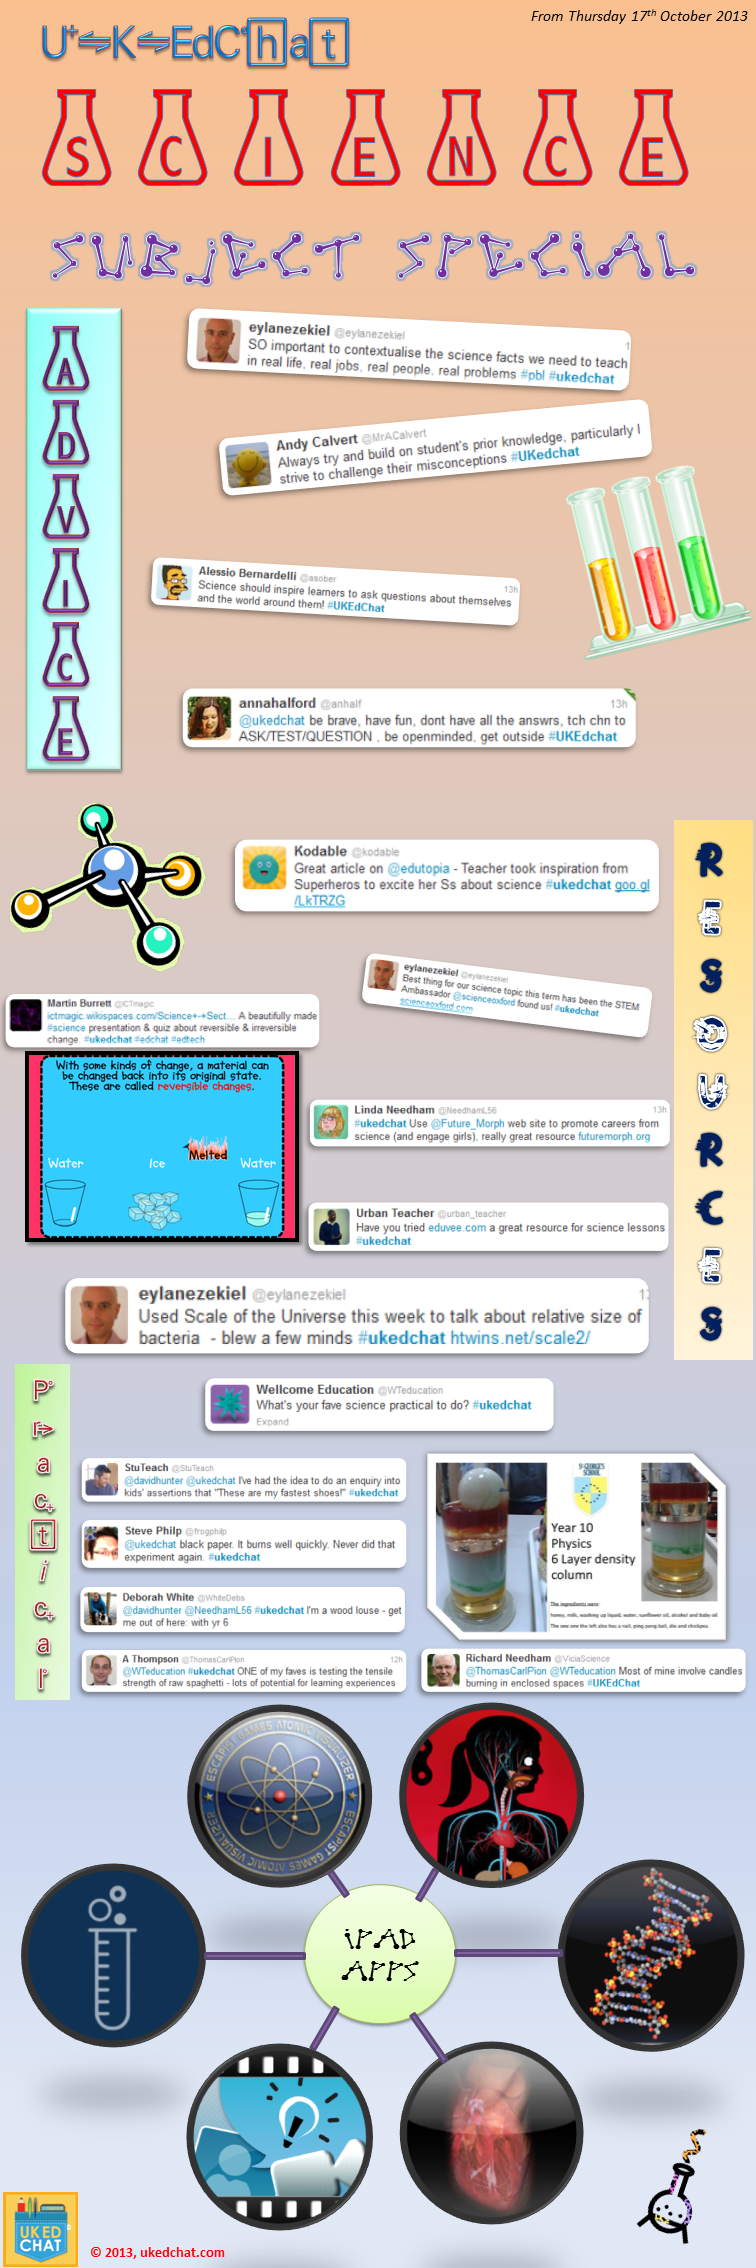 Science Subject Special Summary Infograph. Click to open in PDF, where all images link to the tweet/resource highlighted.